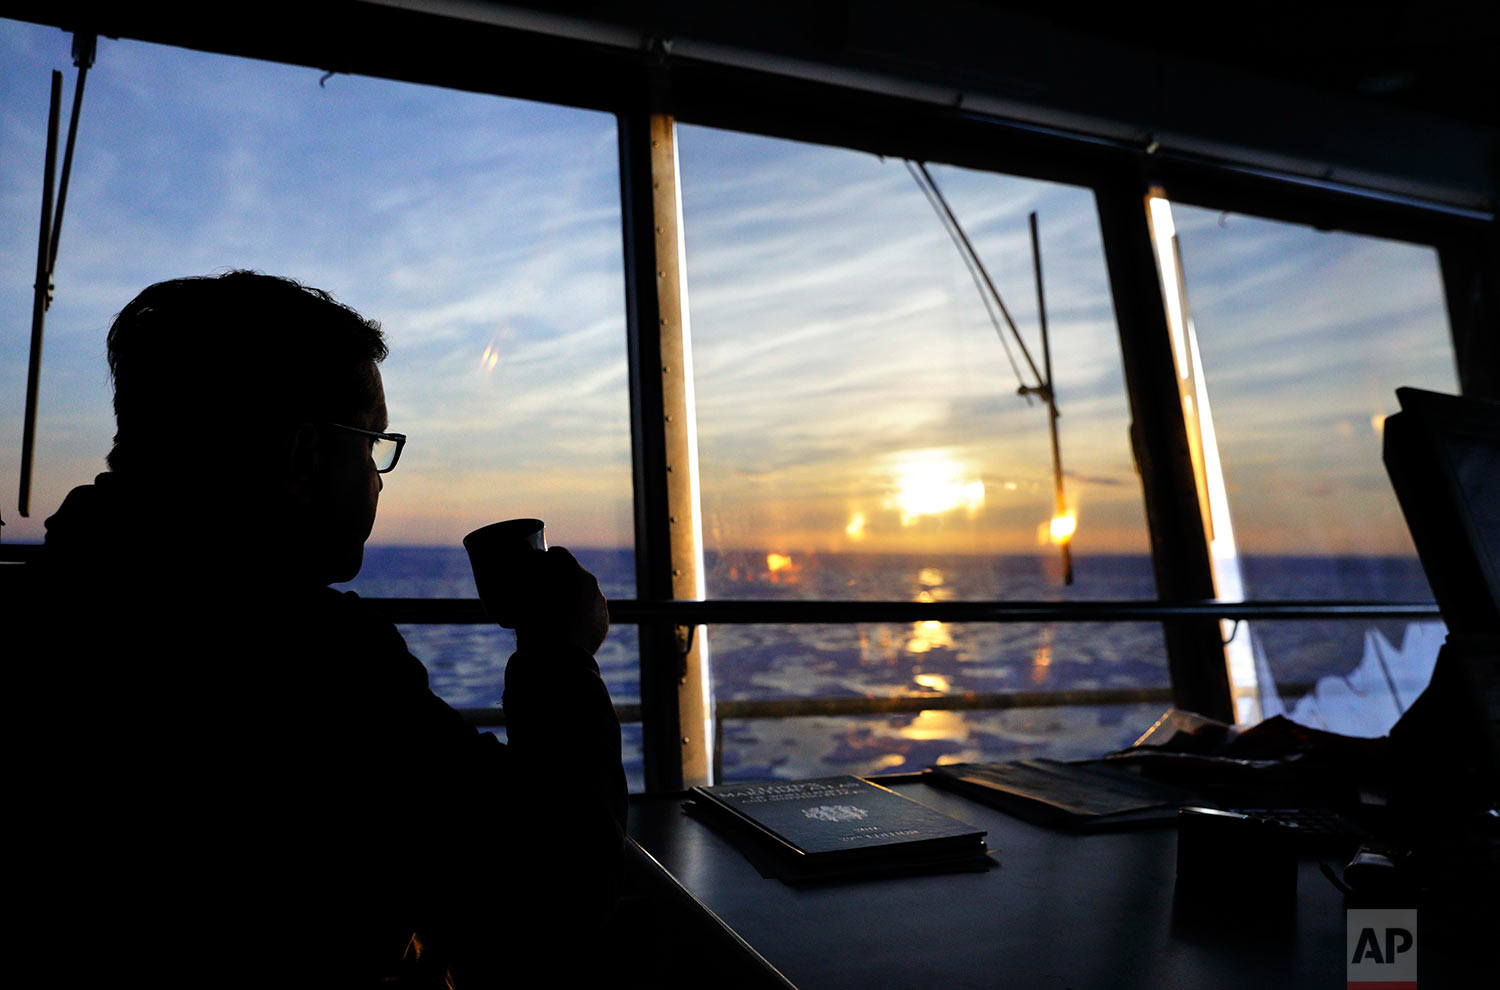 "Sunlight is cast over the sea ice at midnight as Master Mariner Jyri Viljanen, captain of the Finnish icebreaker MSV Nordica, sips a cappuccino while overseeing the navigation of the Northwest Passage through the Victoria Strait in the Canadian Arctic Archipelago, early Saturday, July 22, 2017. Viljanen has been going to sea for 39 years and is making his first transit through the Arctic's Northwest Passage. ""It's once a lifetime,"" said Viljanen of the opportunity. (AP Photo/David Goldman)"